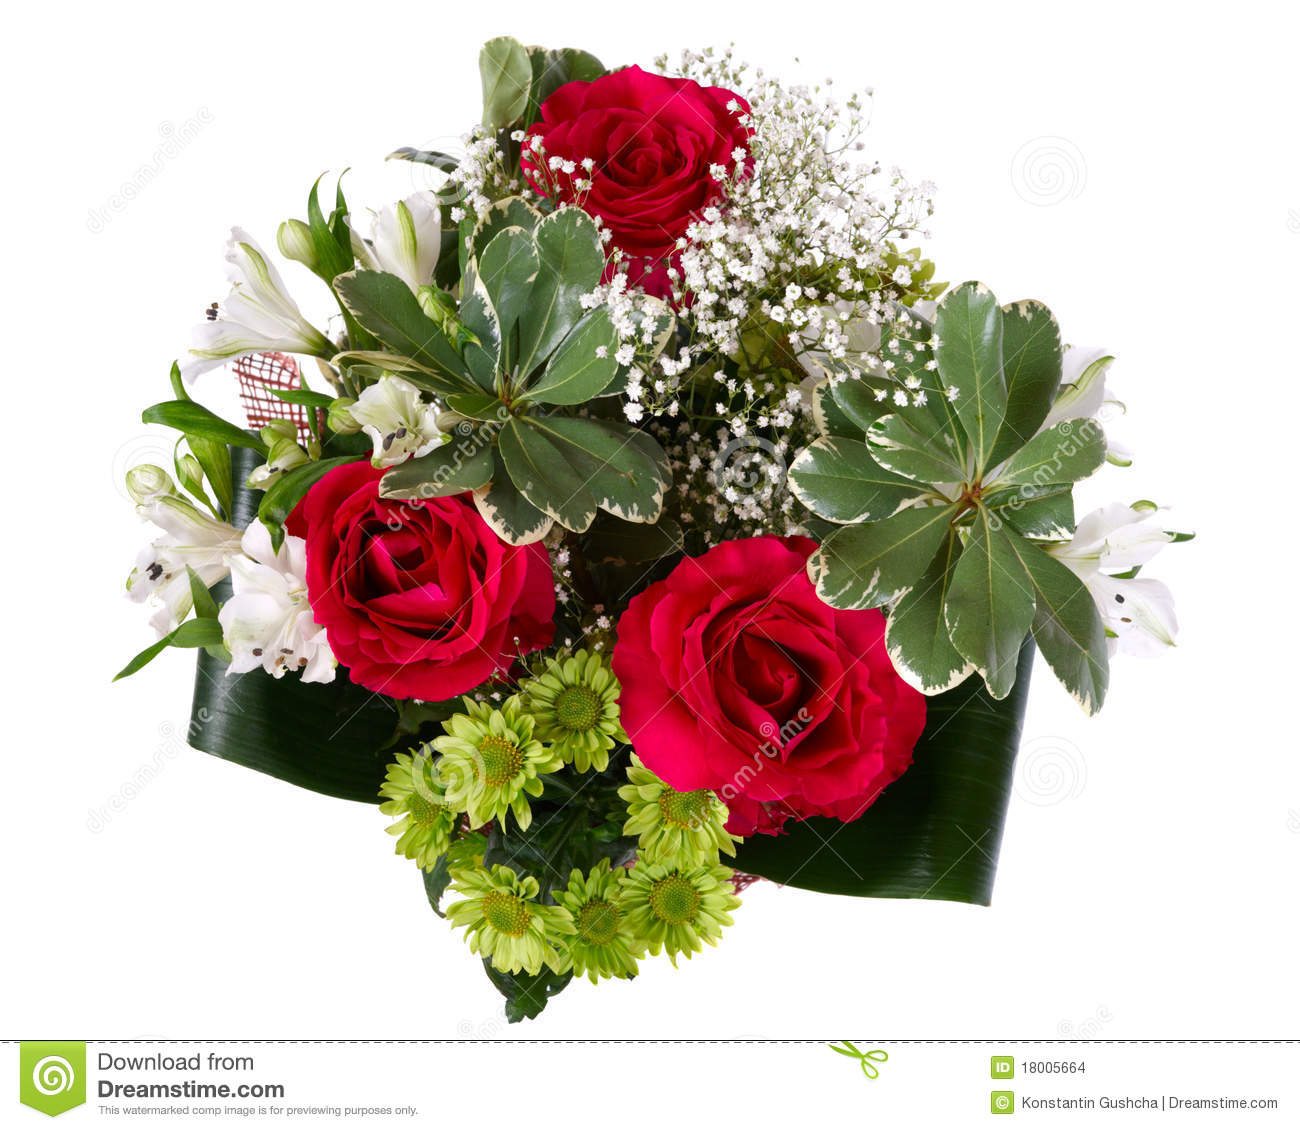 Bunch of flowers images download svg stock Bunch Of Flowers Stock Images - Image: 18005664 svg stock